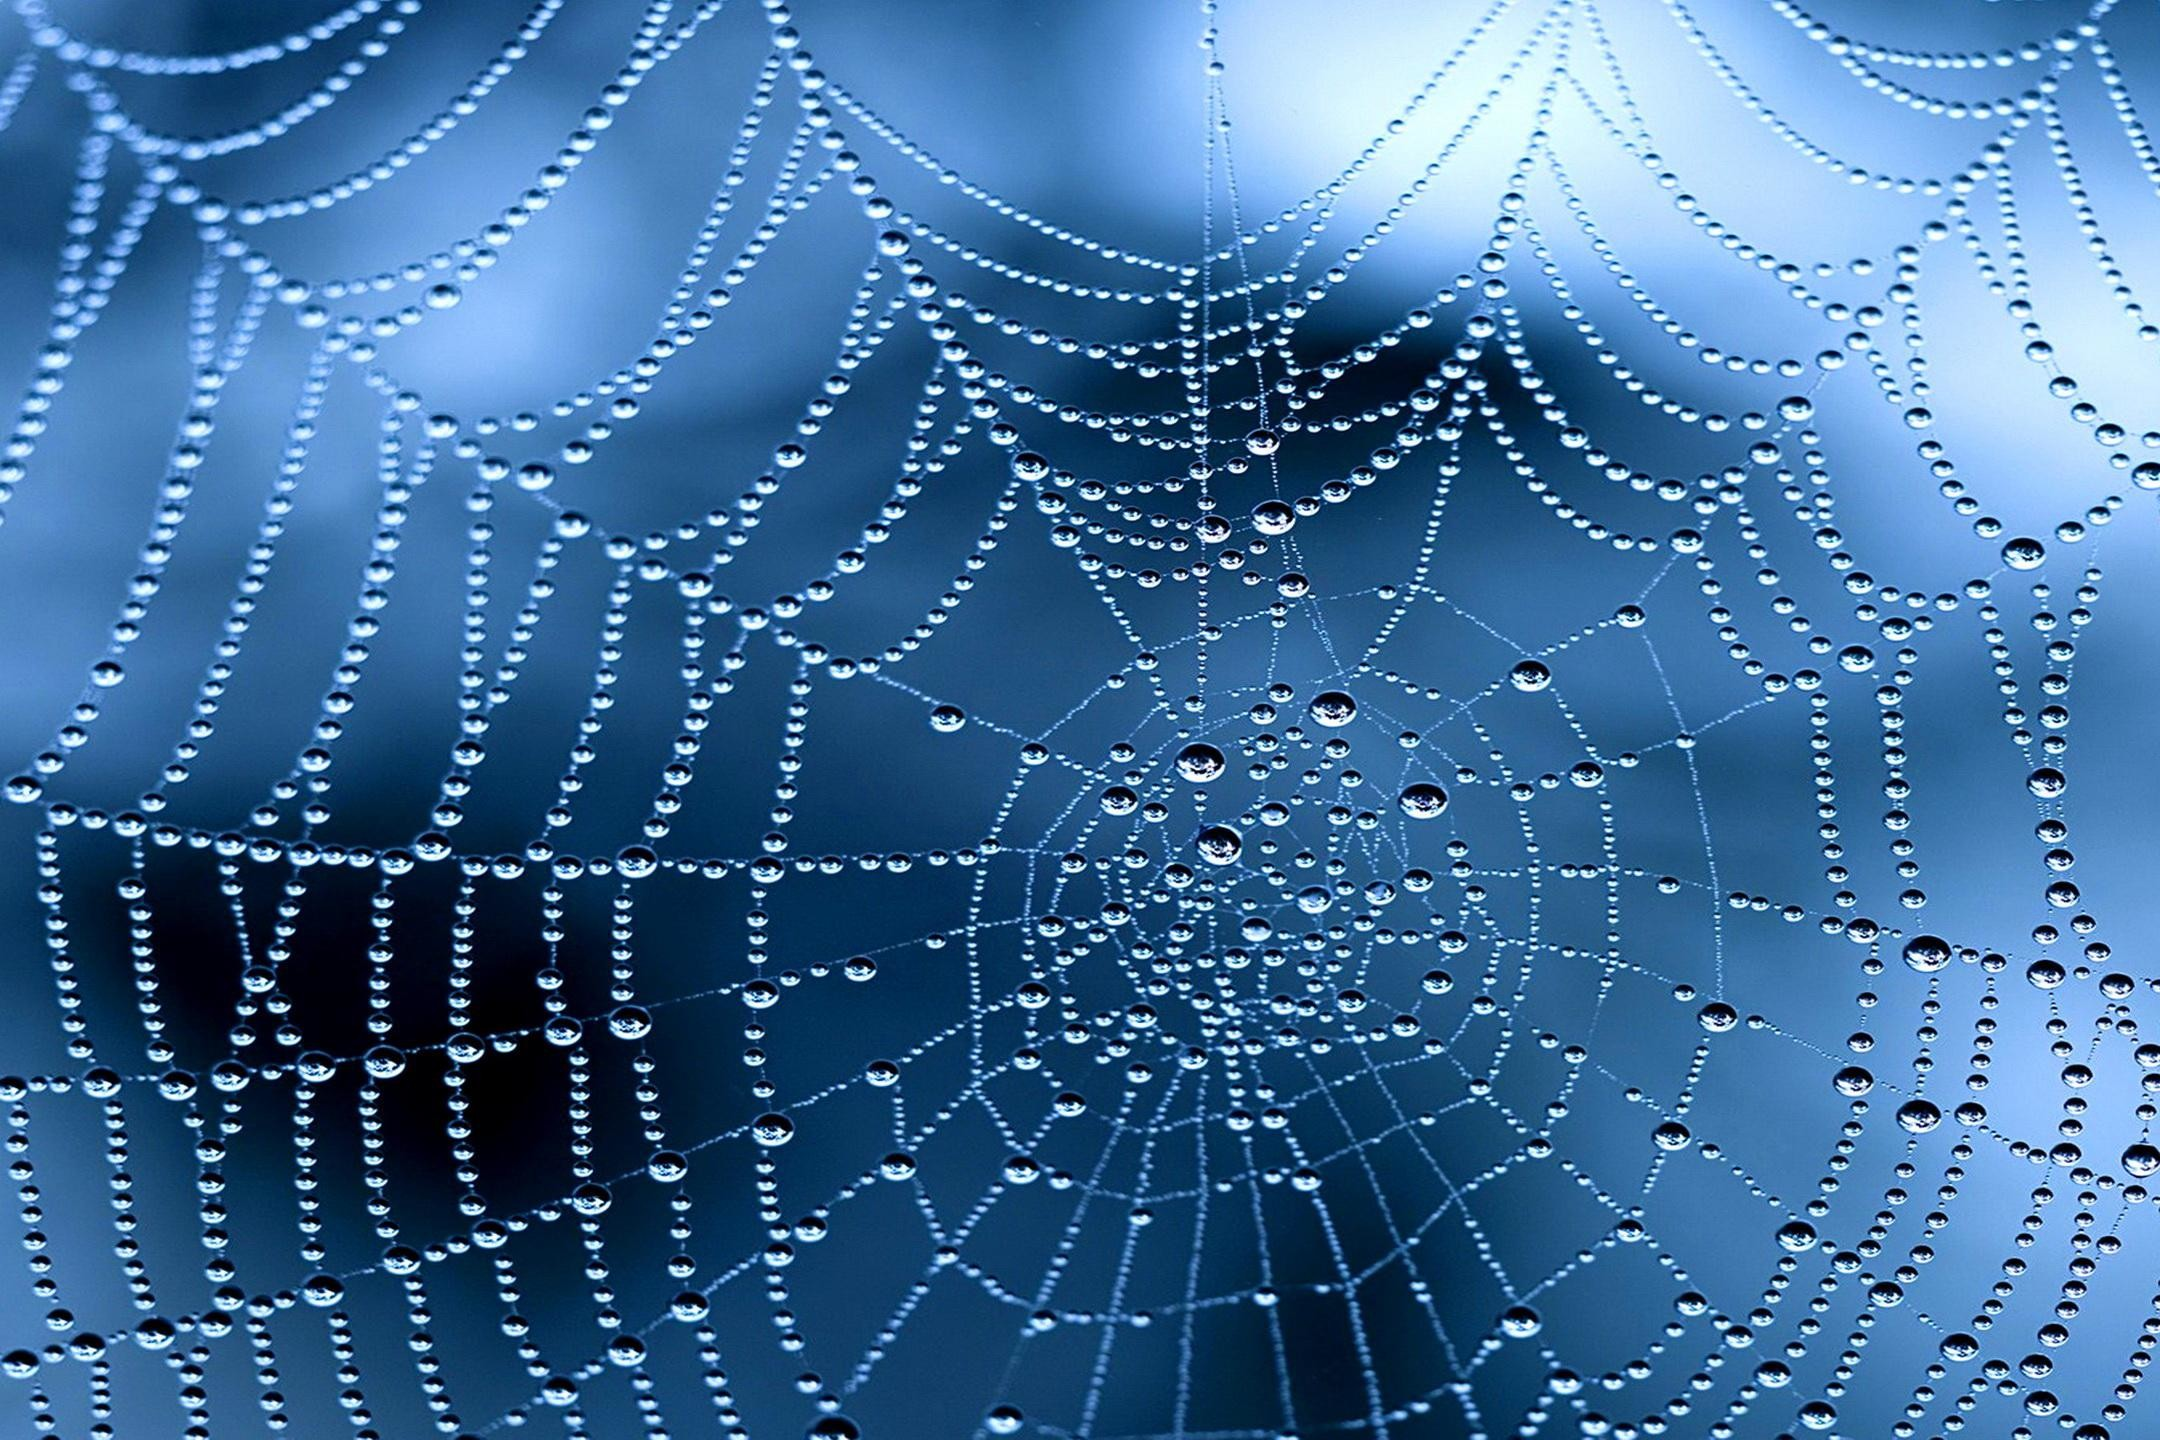 Beautiful spider web against a blue background with dew drops on it.